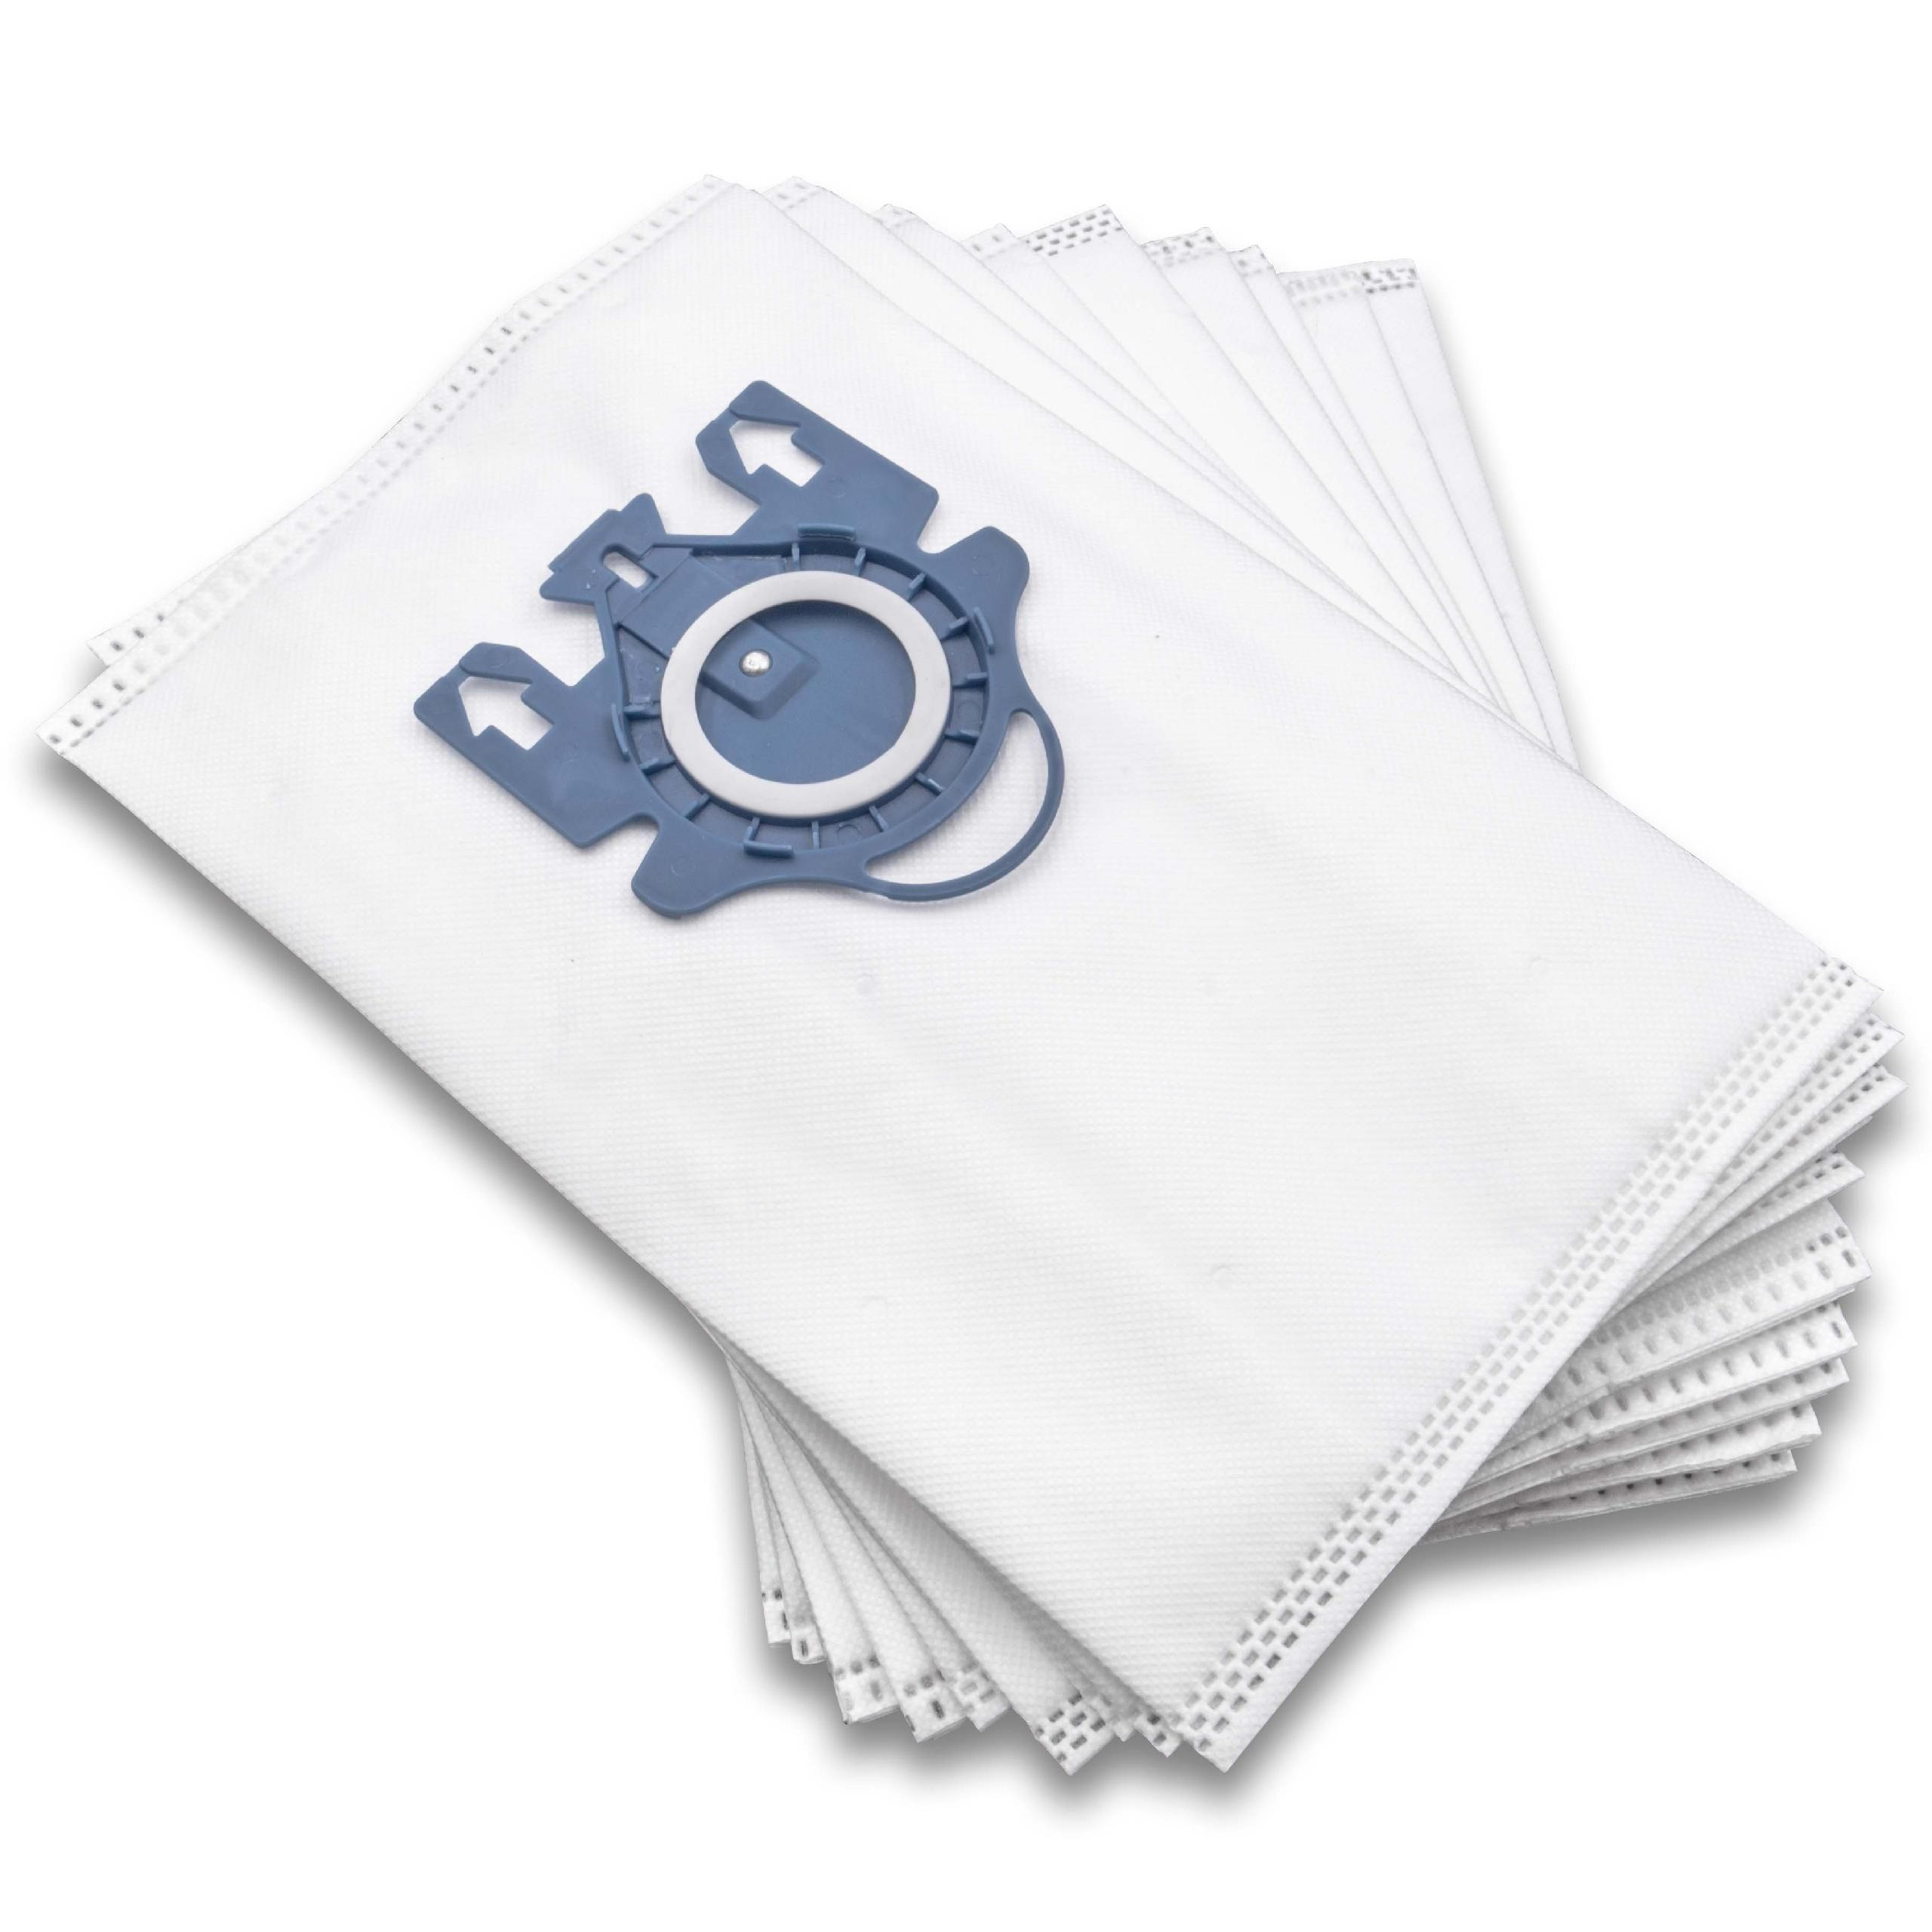 10 dust bags microfleece for vacuum cleaner replaces Miele Typ FJM